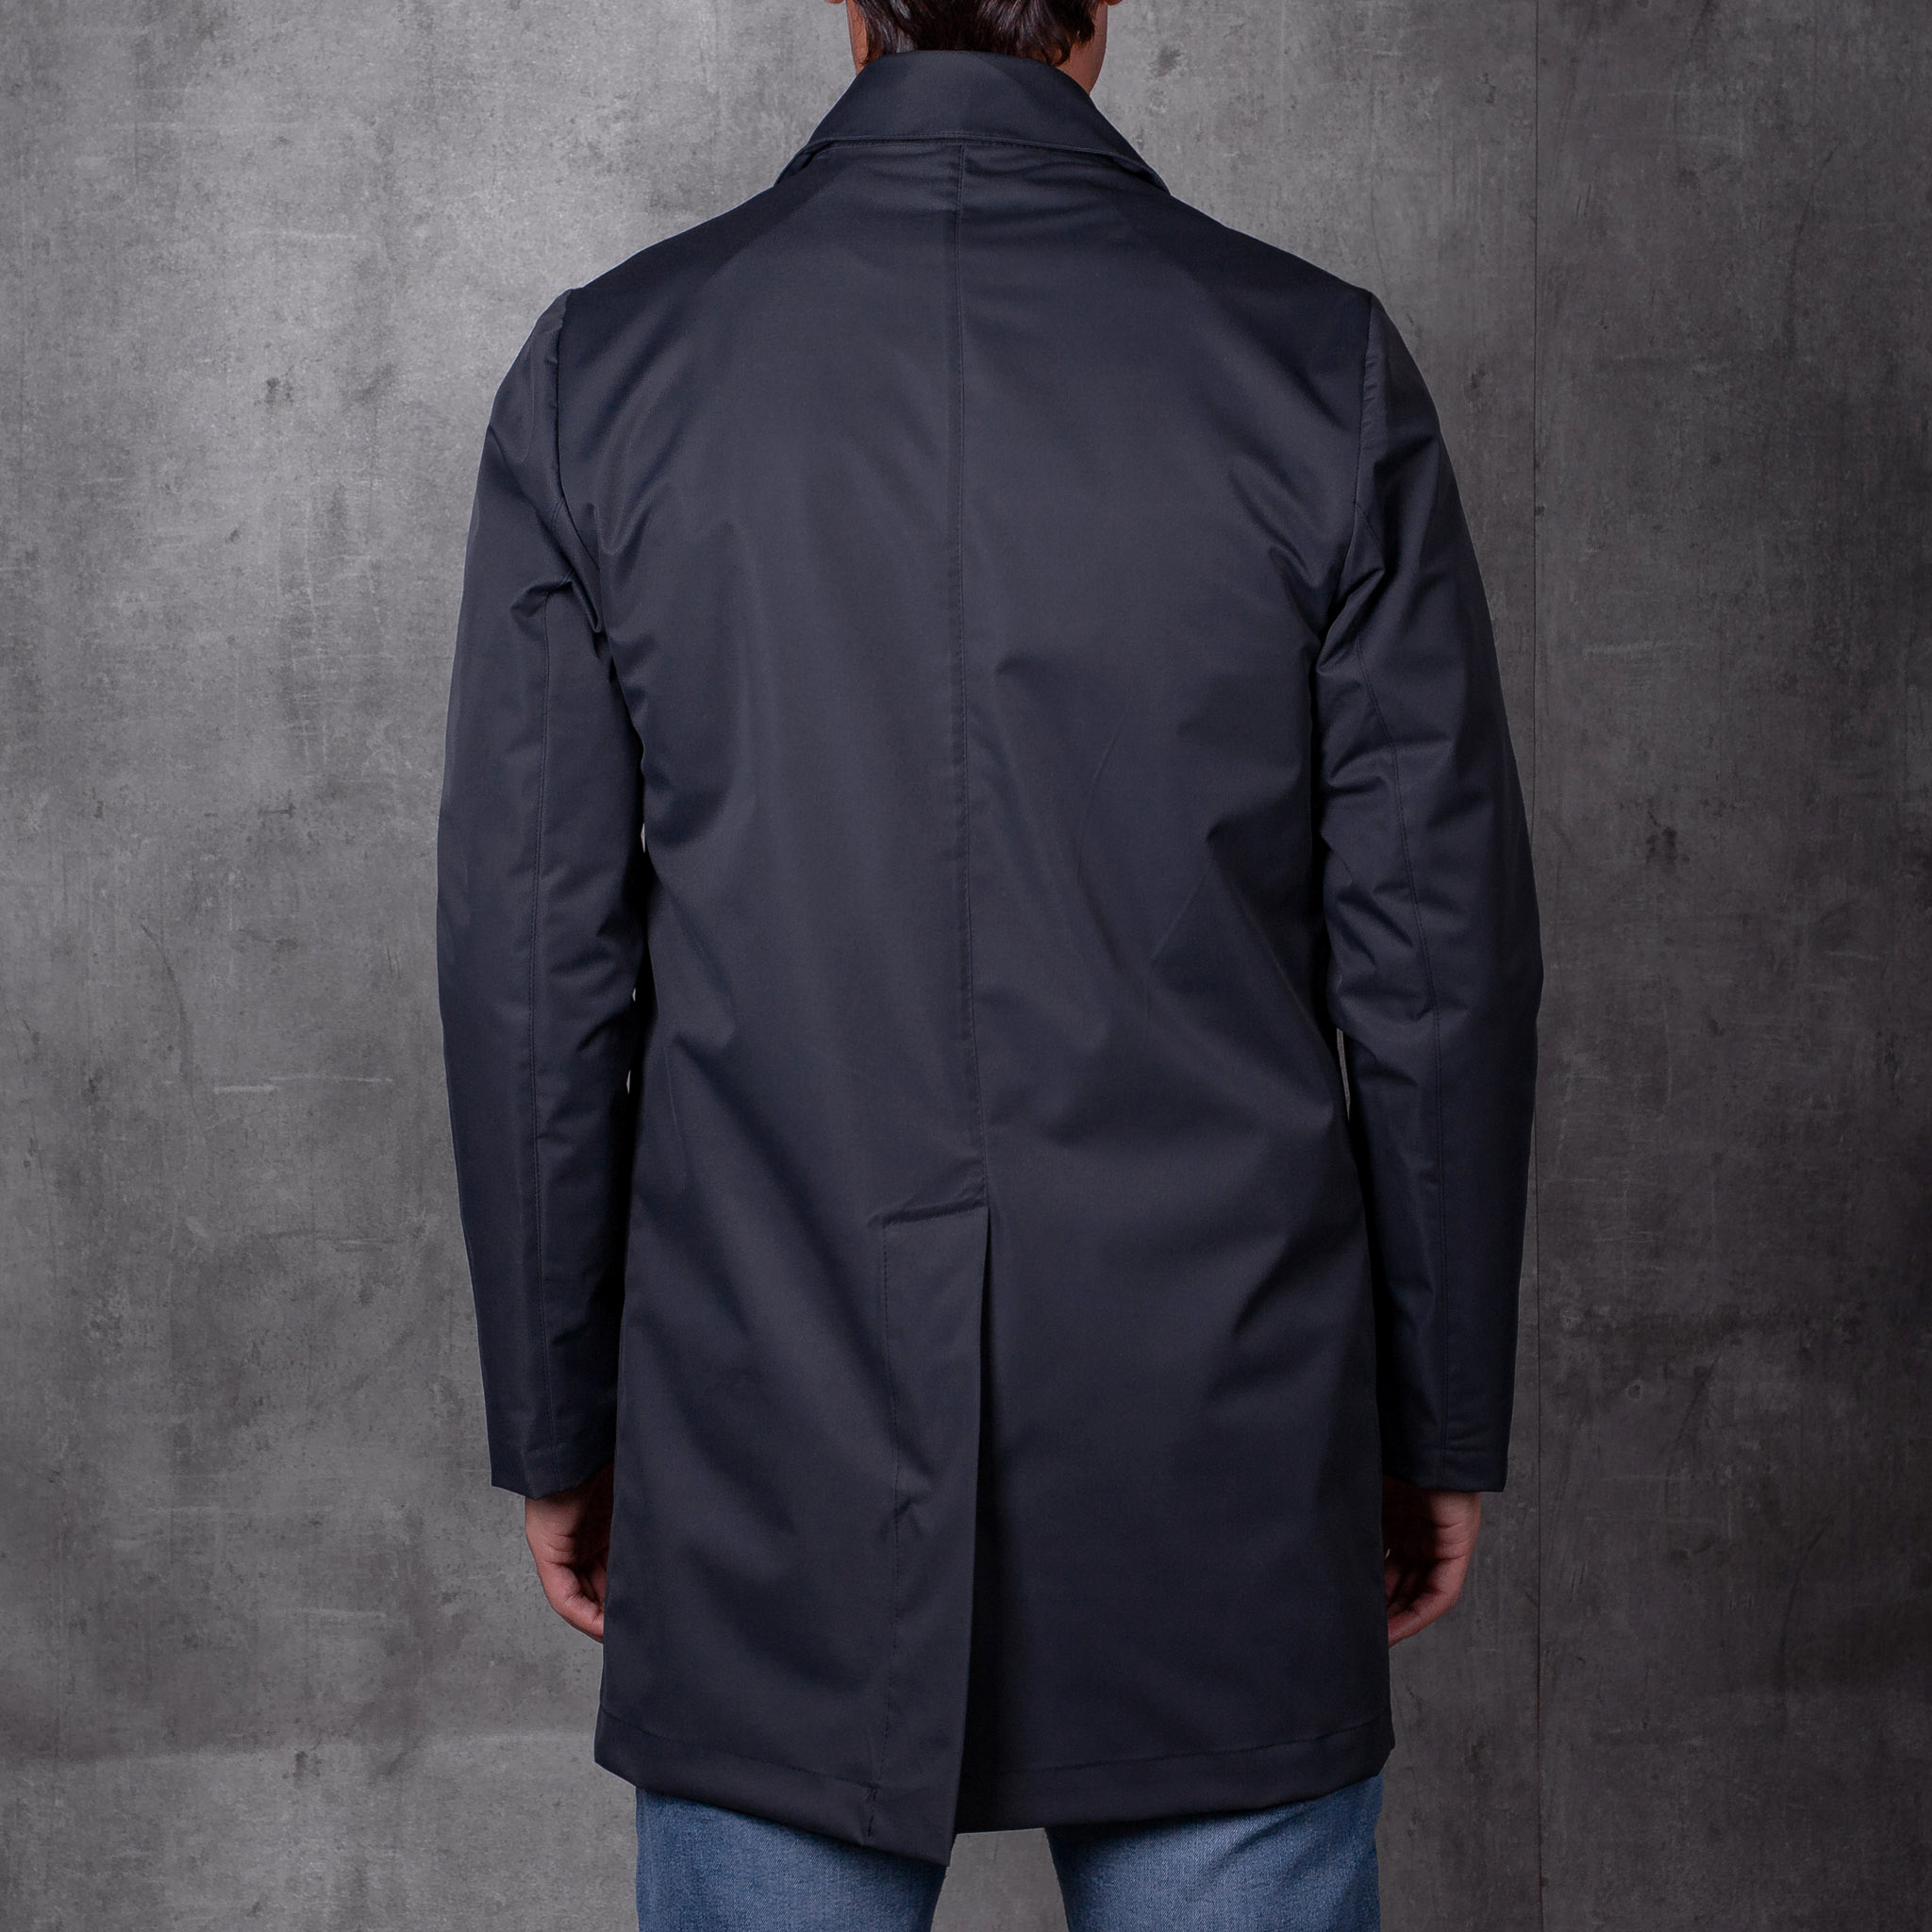 RAINCOAT-GABARDINA-01-02-The-Seelk-3